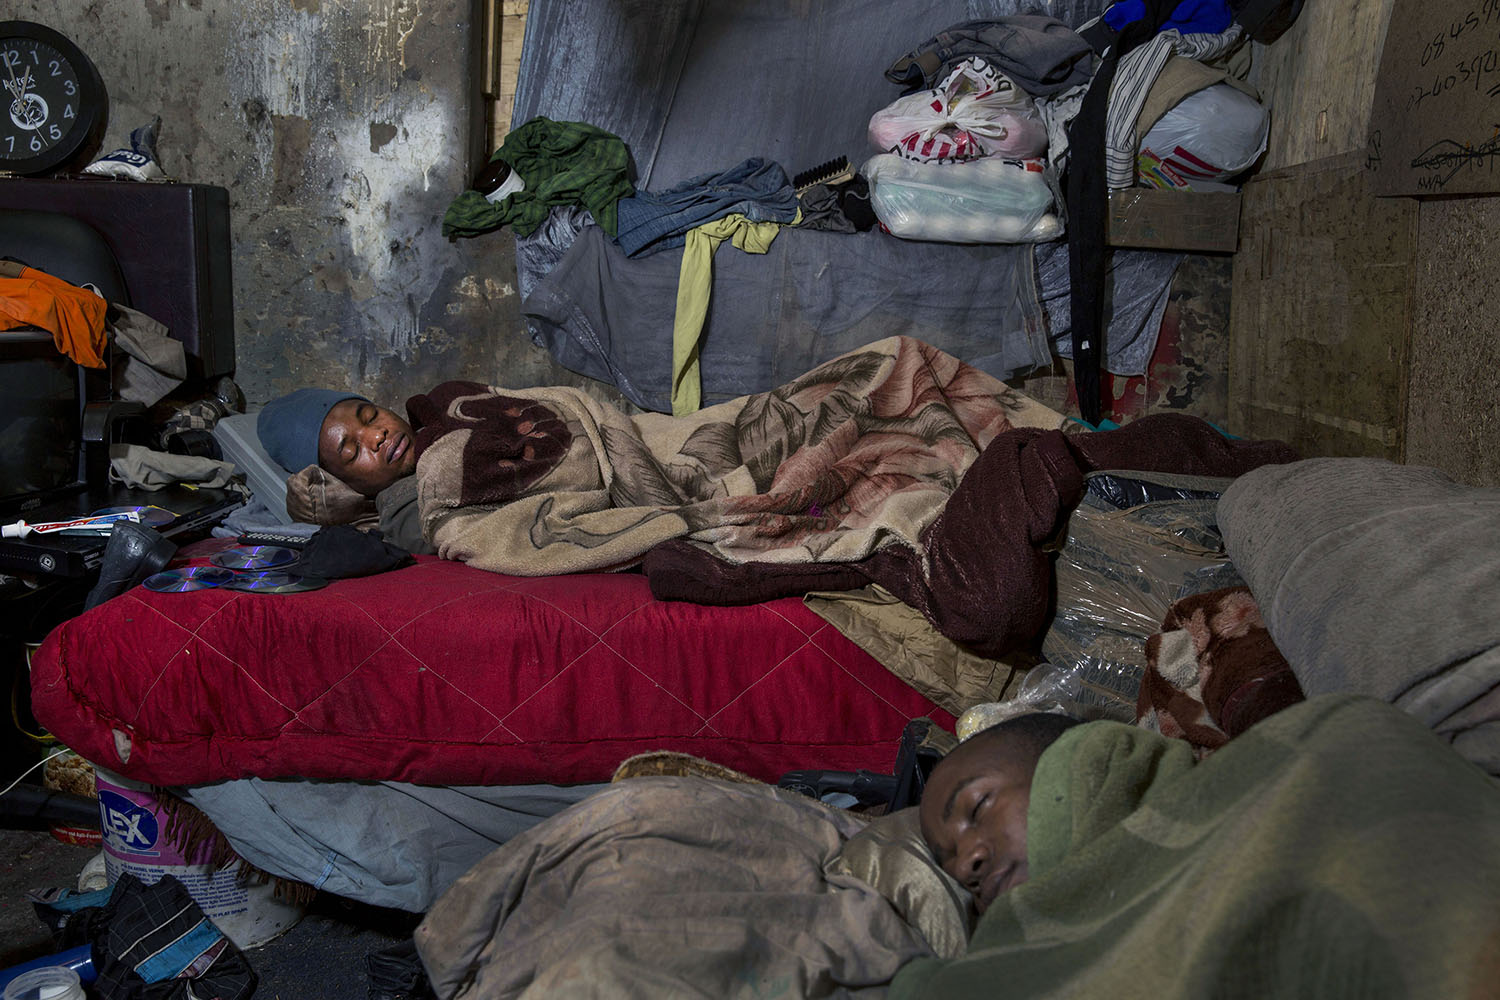 African migrants from Zimbabwe sleep in tight quarters, July 12, 2015.